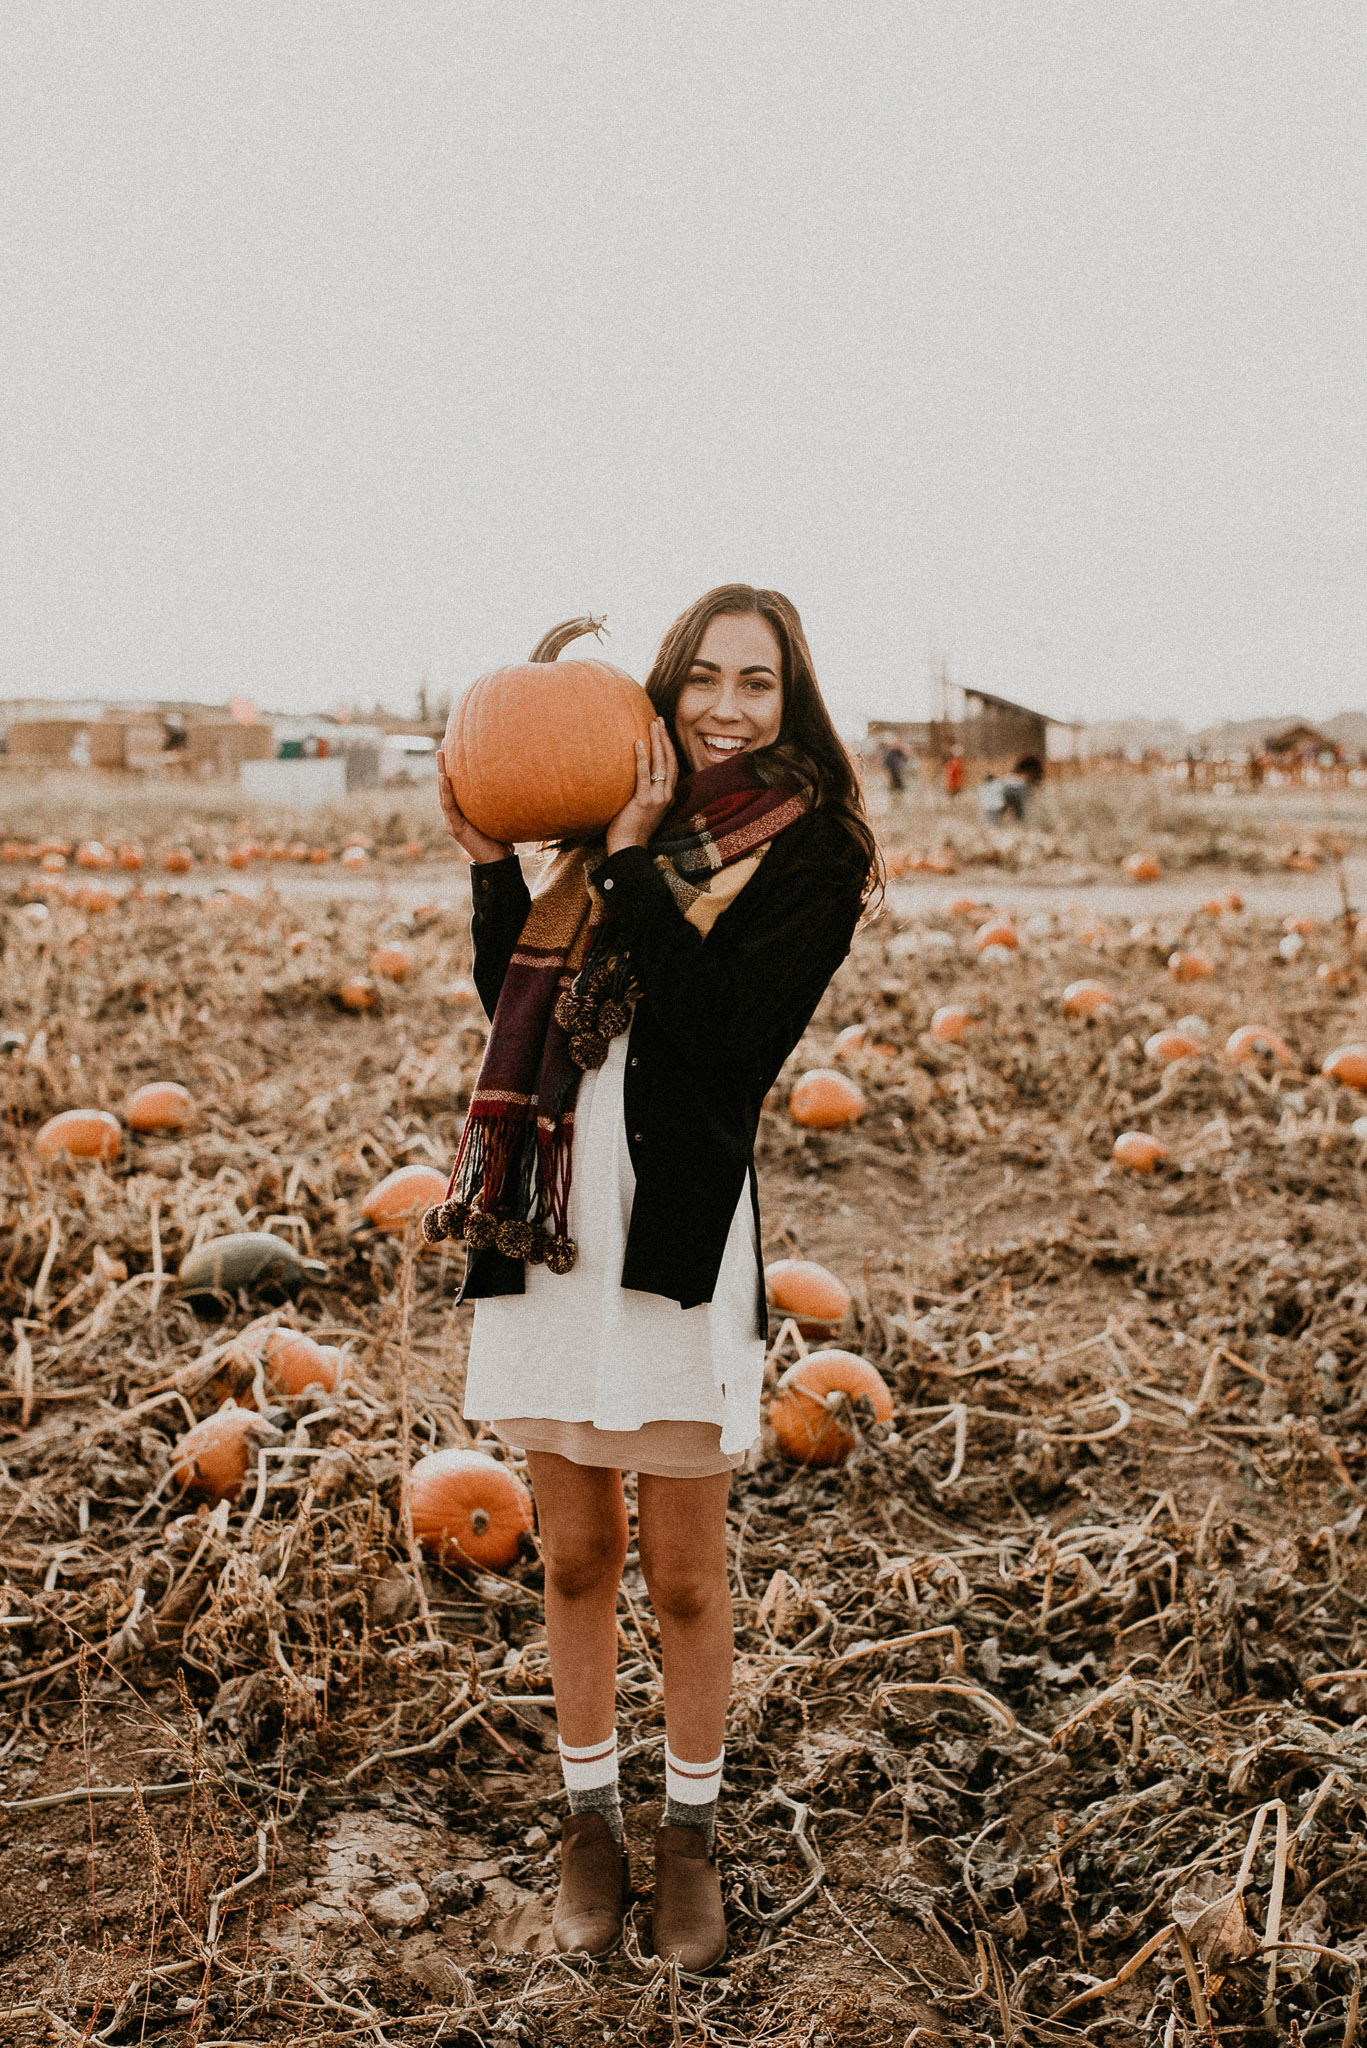 Boise Senior Photographers Meridian Photographer Makayla Madden Photography Fall Senior Pictures Cornfield Idaho Raw Real Pumpkin Patch Fun